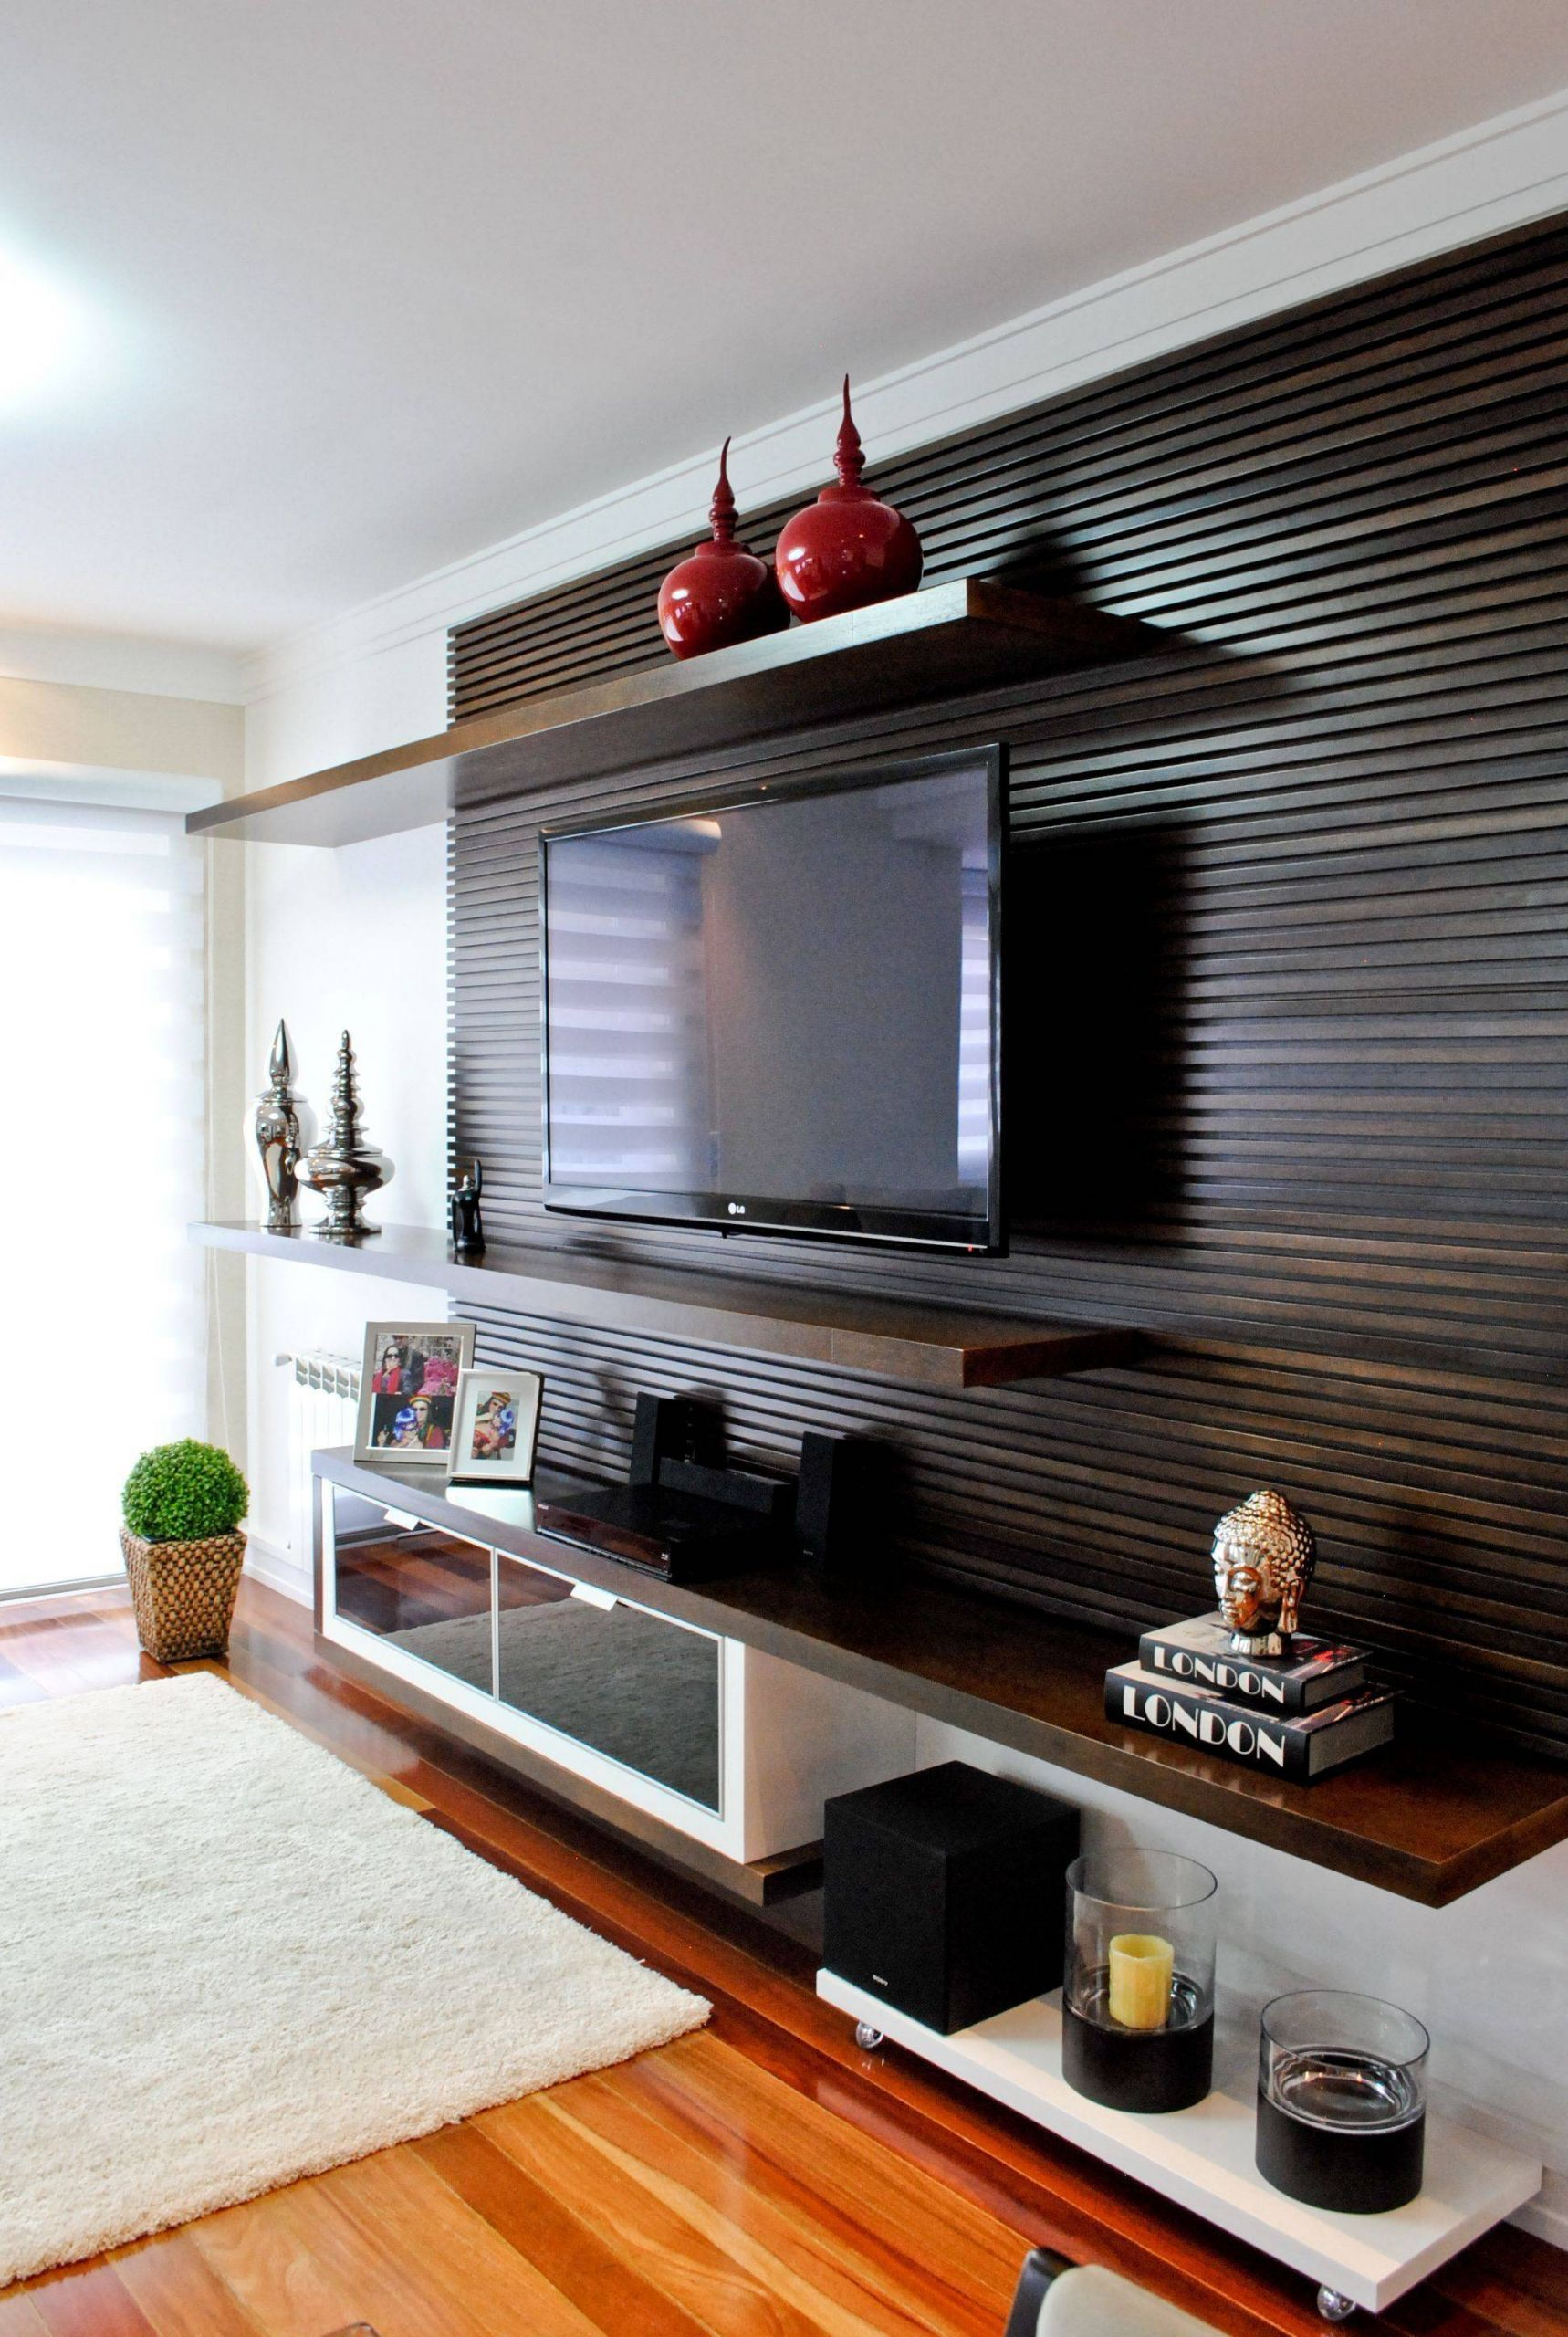 Remarkable How to Decorate A Wall Unit Lovely 40 Remarkable Ideas to Improve Your Home Decor